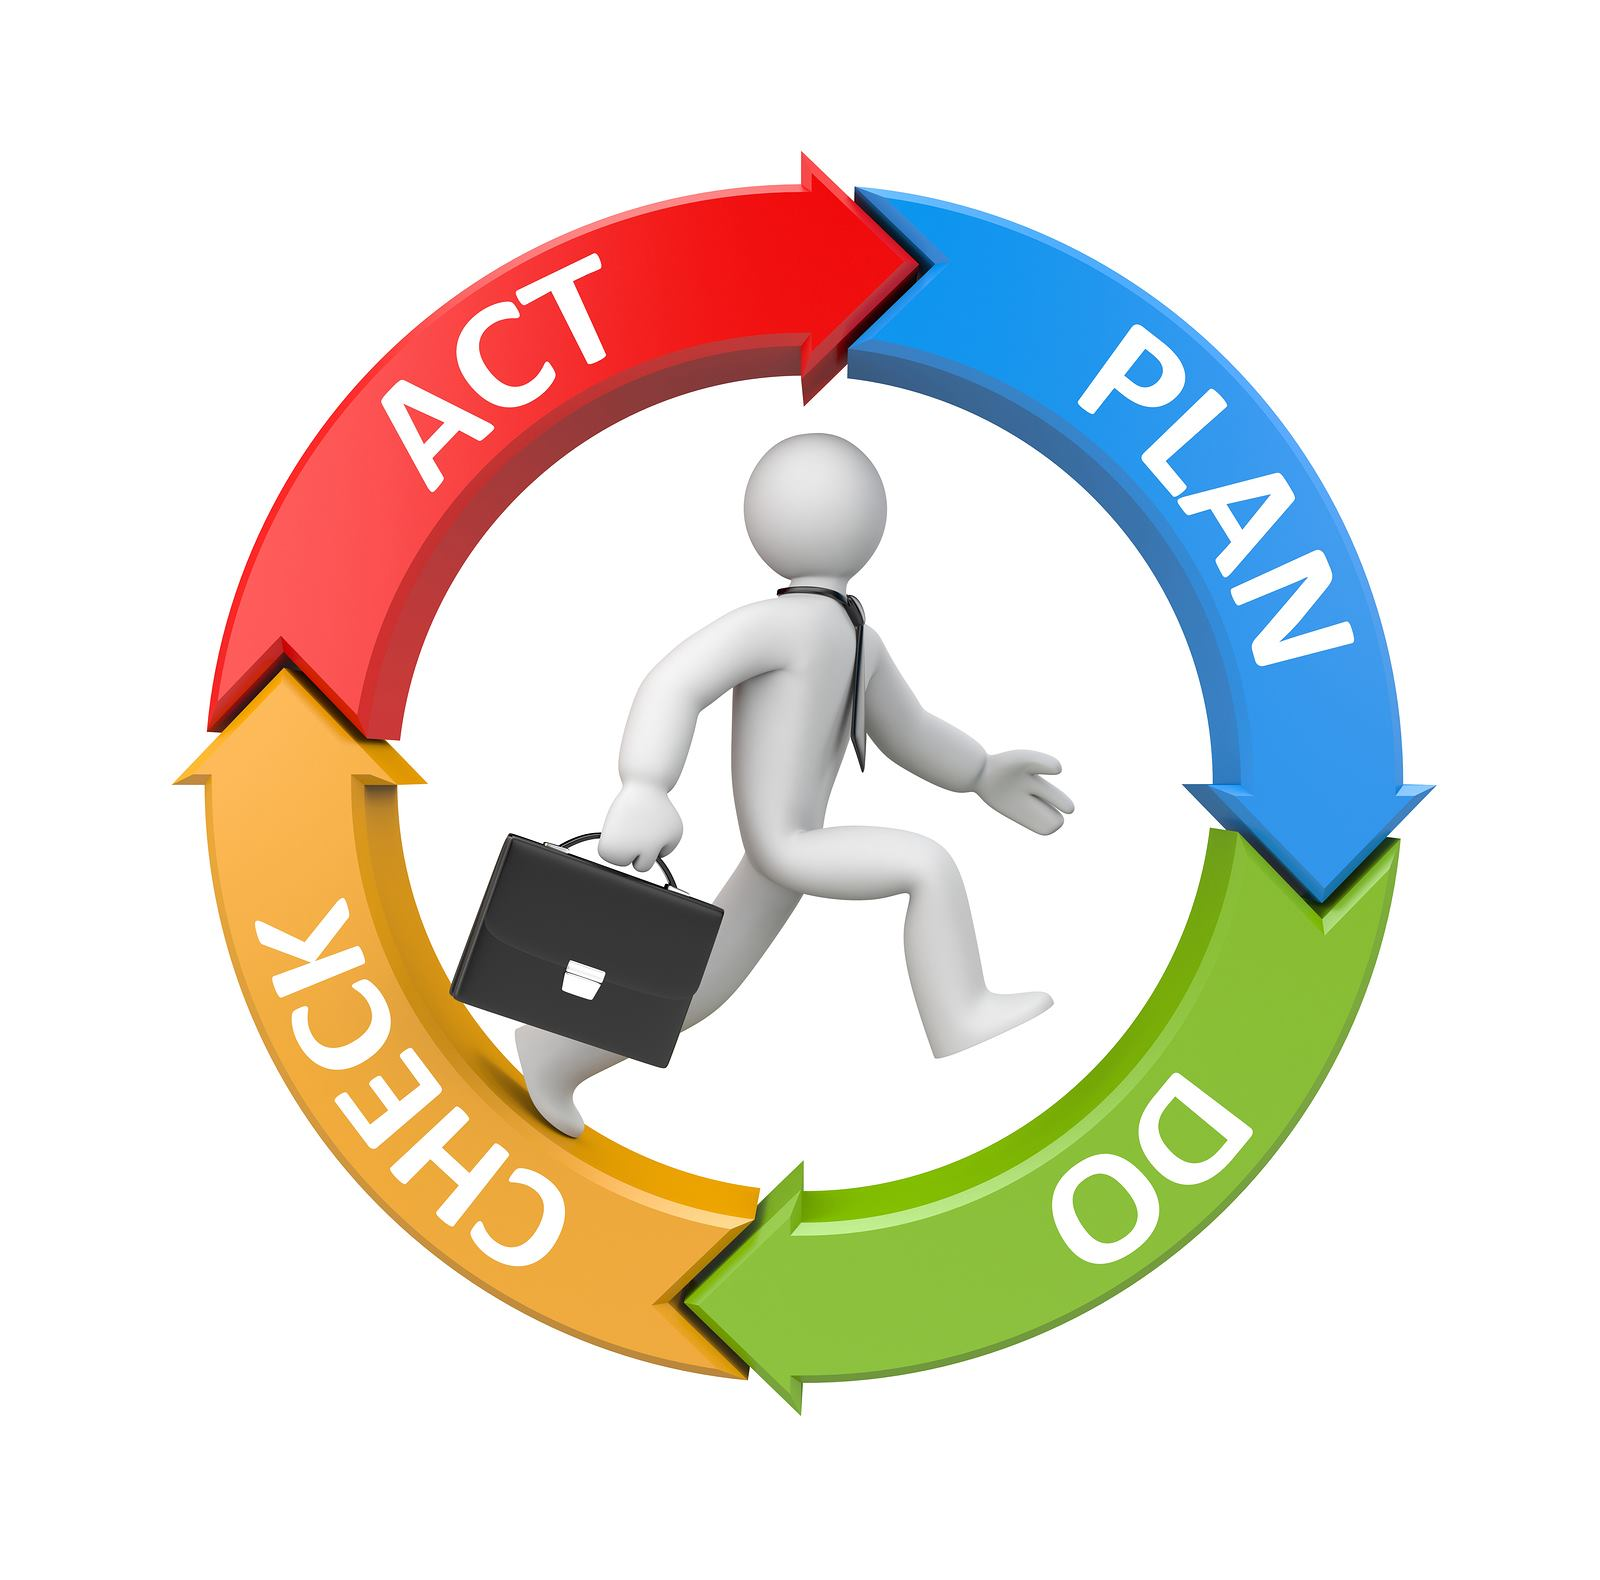 Plan Do Check Action (PDCA)